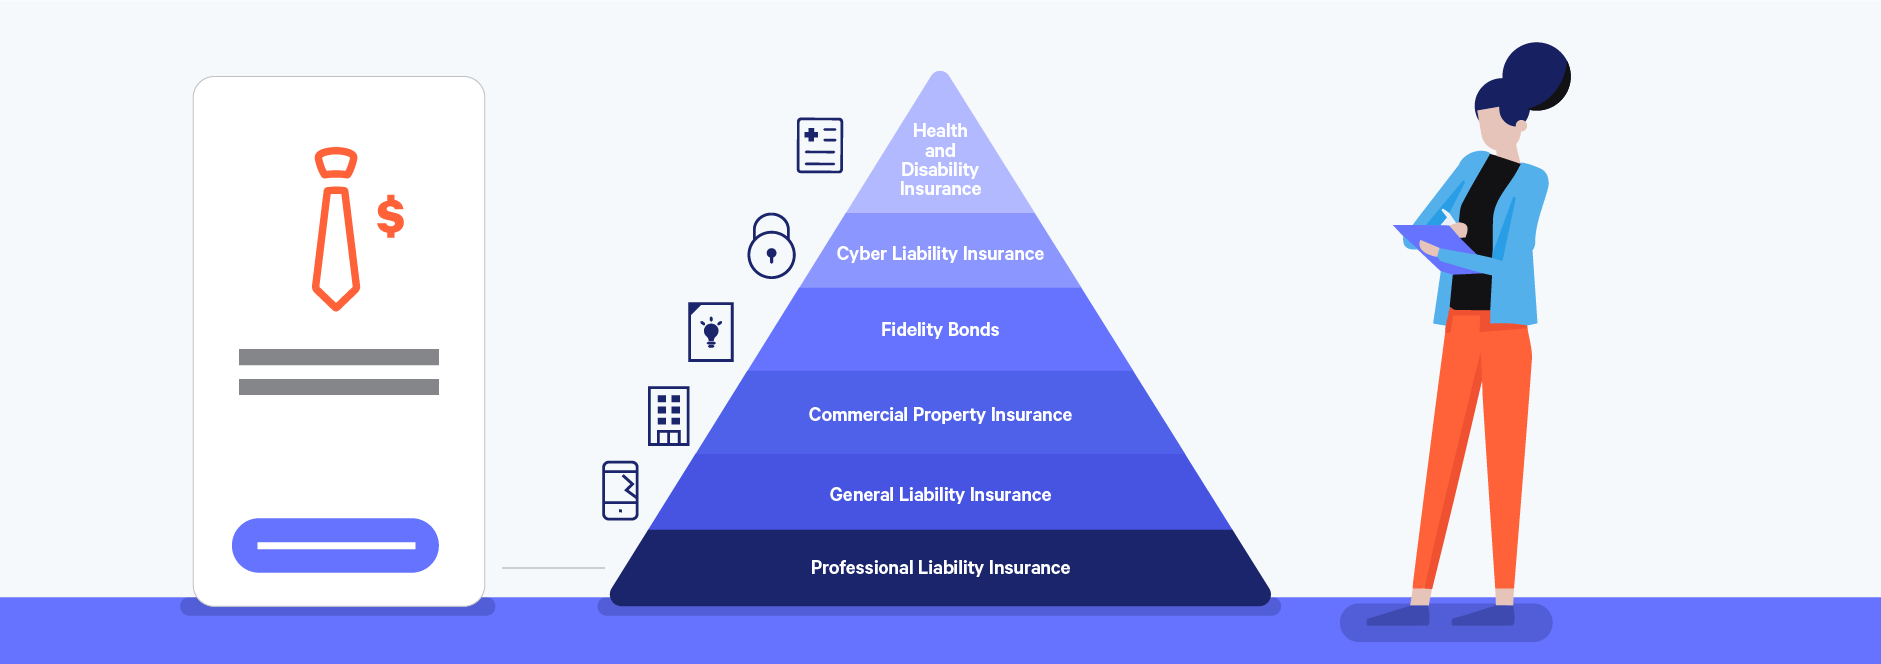 professional liability insurance as a key freelance insurance policy illustration